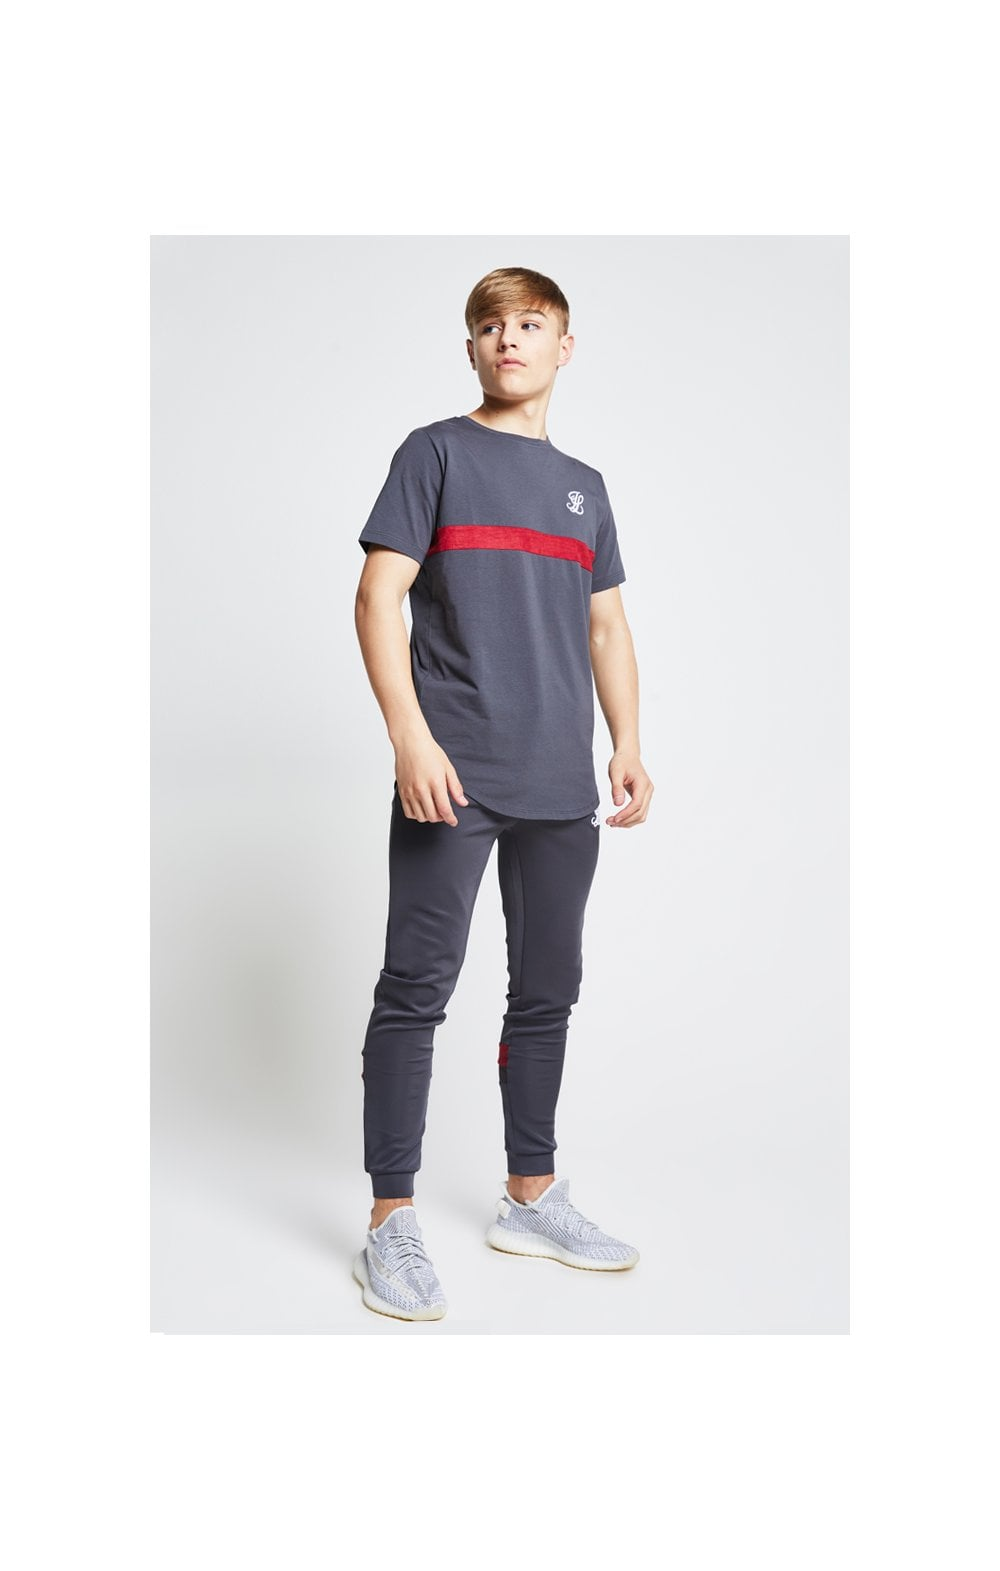 Illusive London Contrast Cut & Sew Tee - Grey & Pink (4)